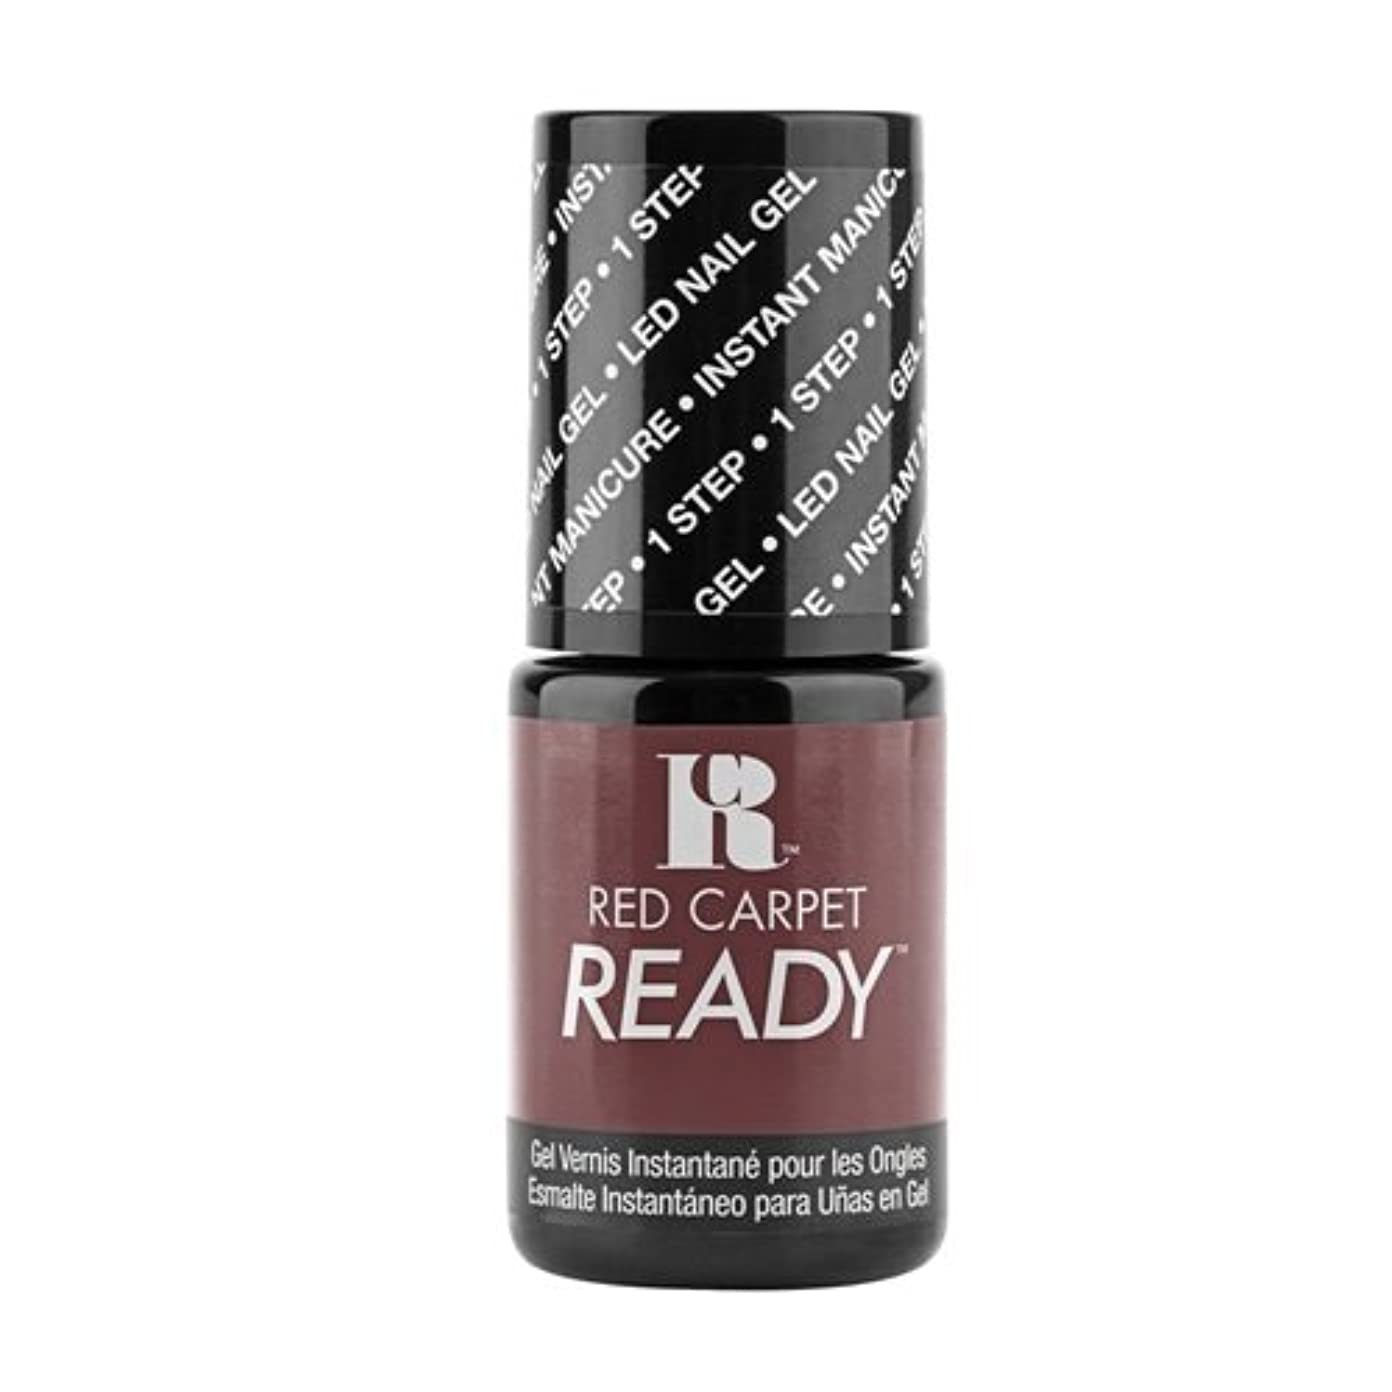 羊の服を着た狼器具安いですRed Carpet Manicure - One Step LED Gel Polish - Reality Check - 0.17oz / 5ml